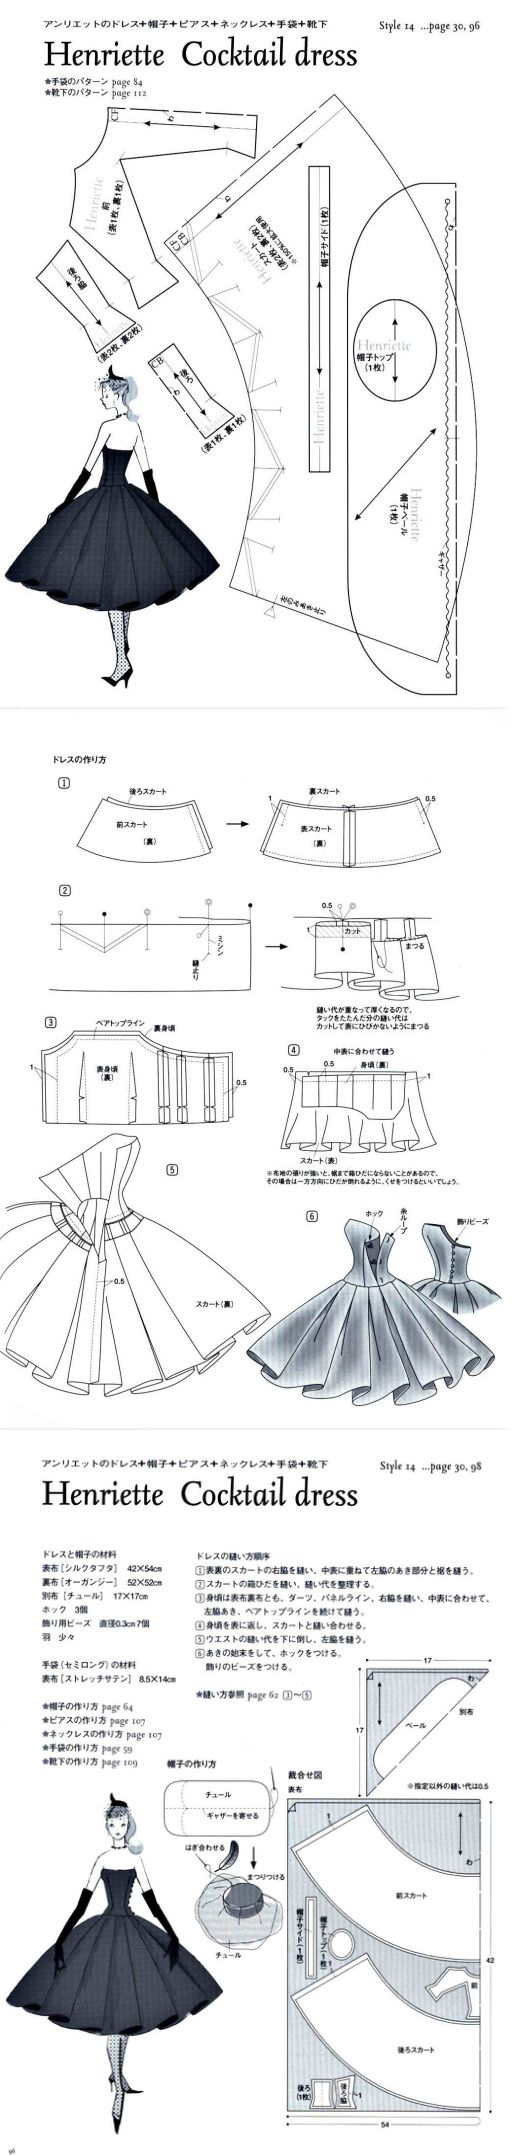 Henriette Cocktail Dress Pattern (Attach a tutu skirt to a corset top?)